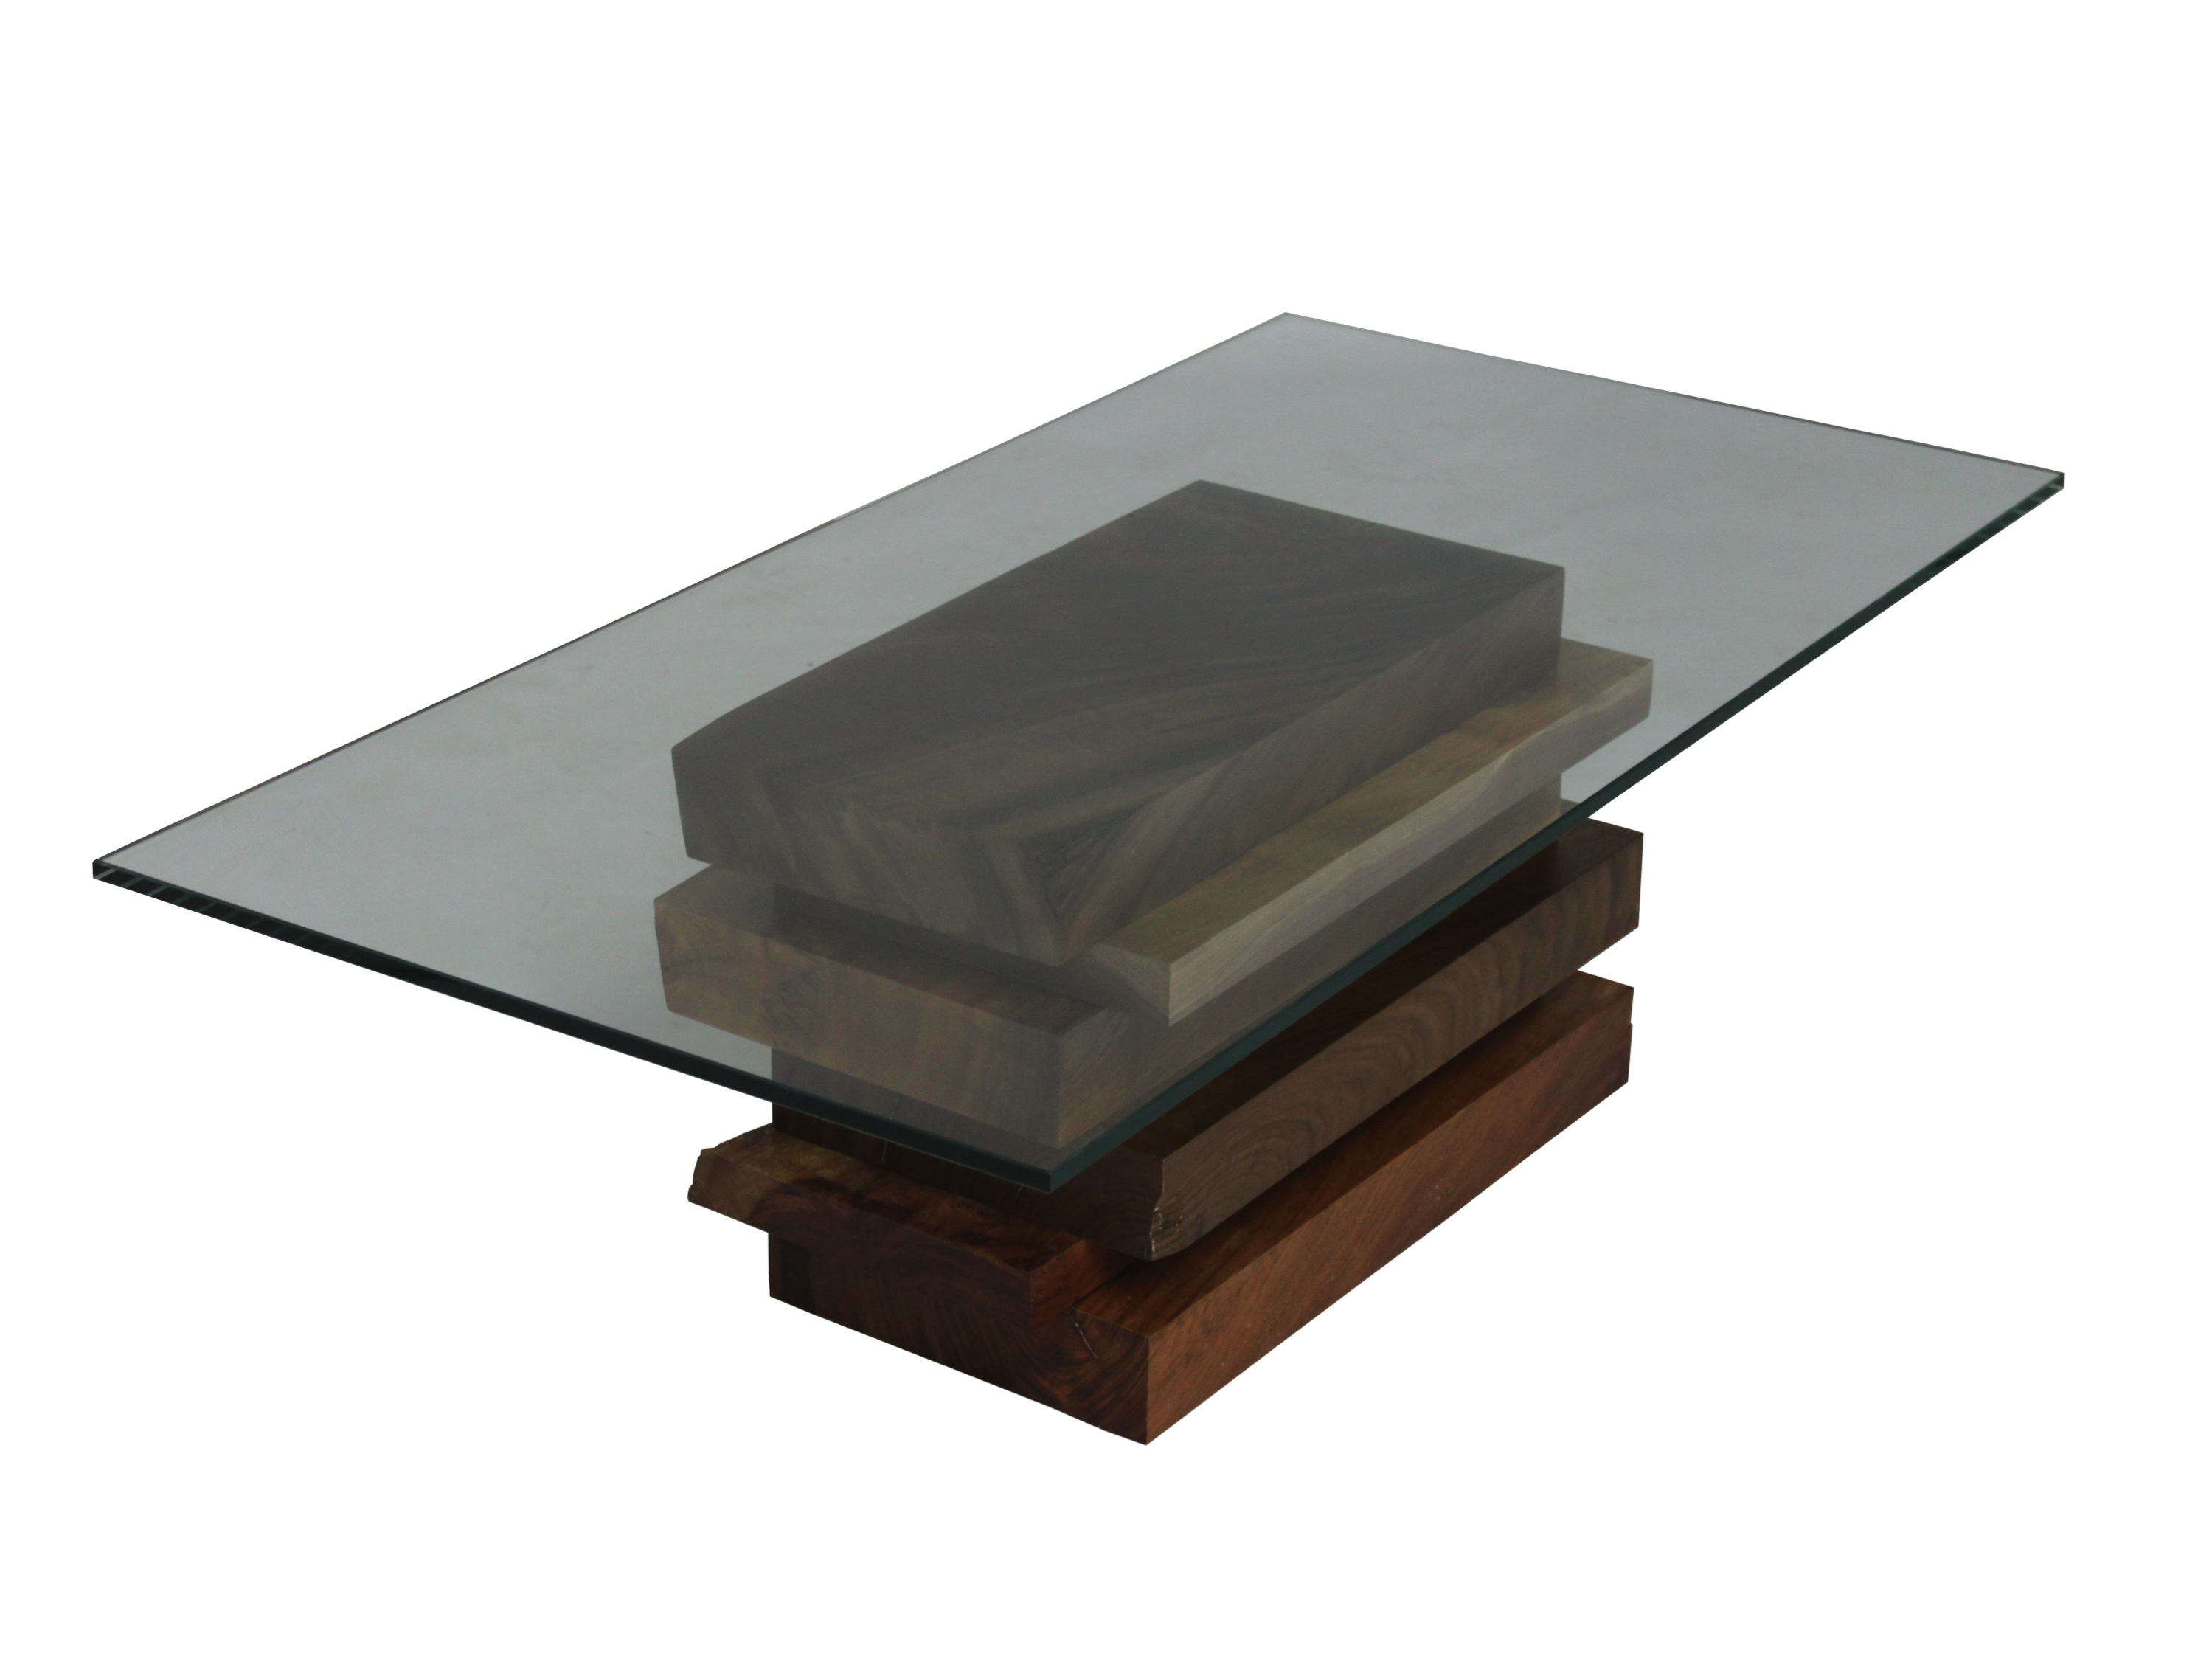 10 Ideas of Coffee Tables Glass and Wood